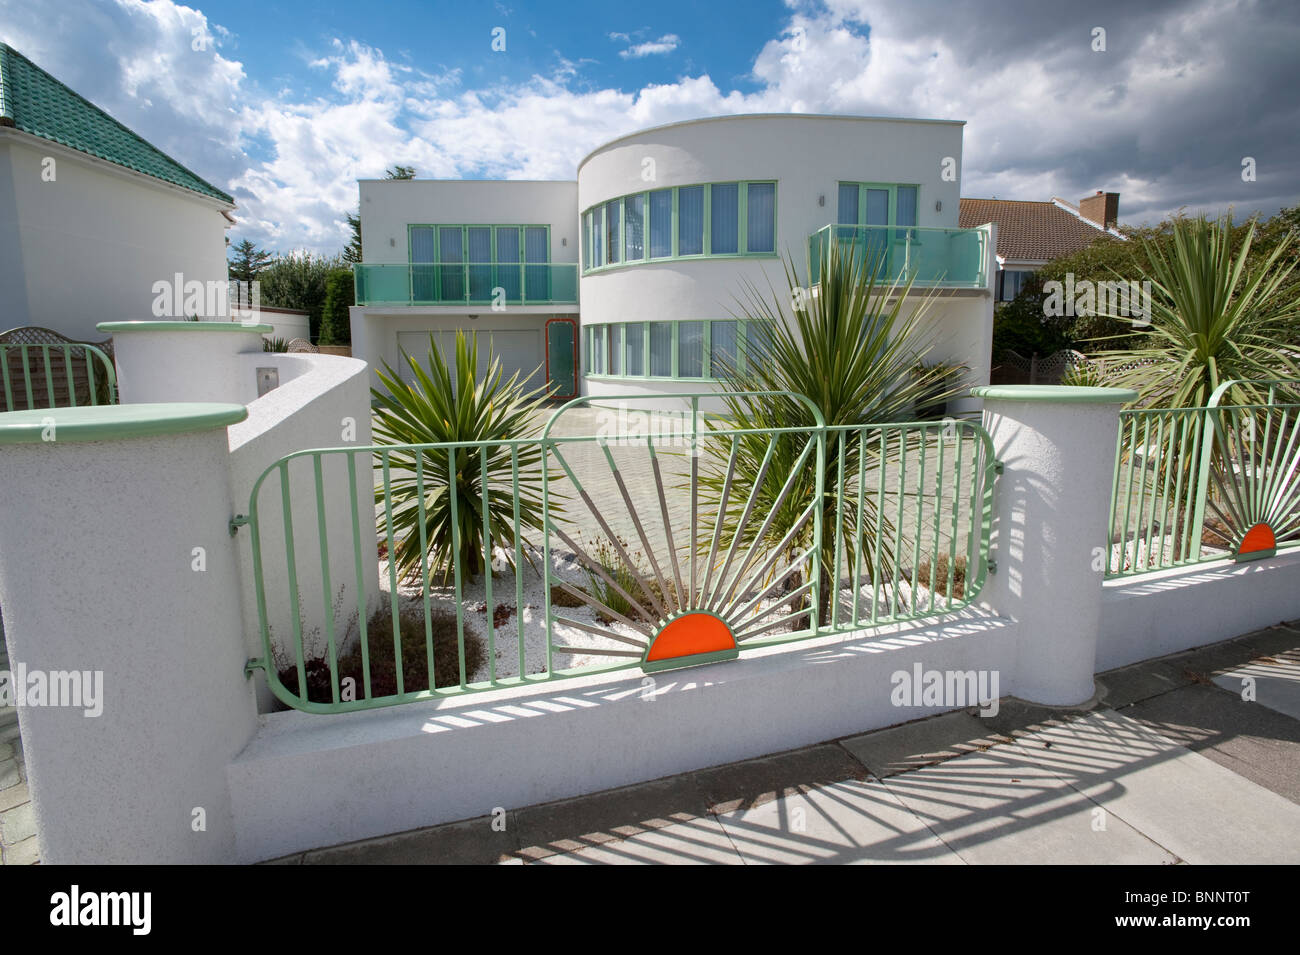 Art Deco House With Curved White Walls And Distinctive